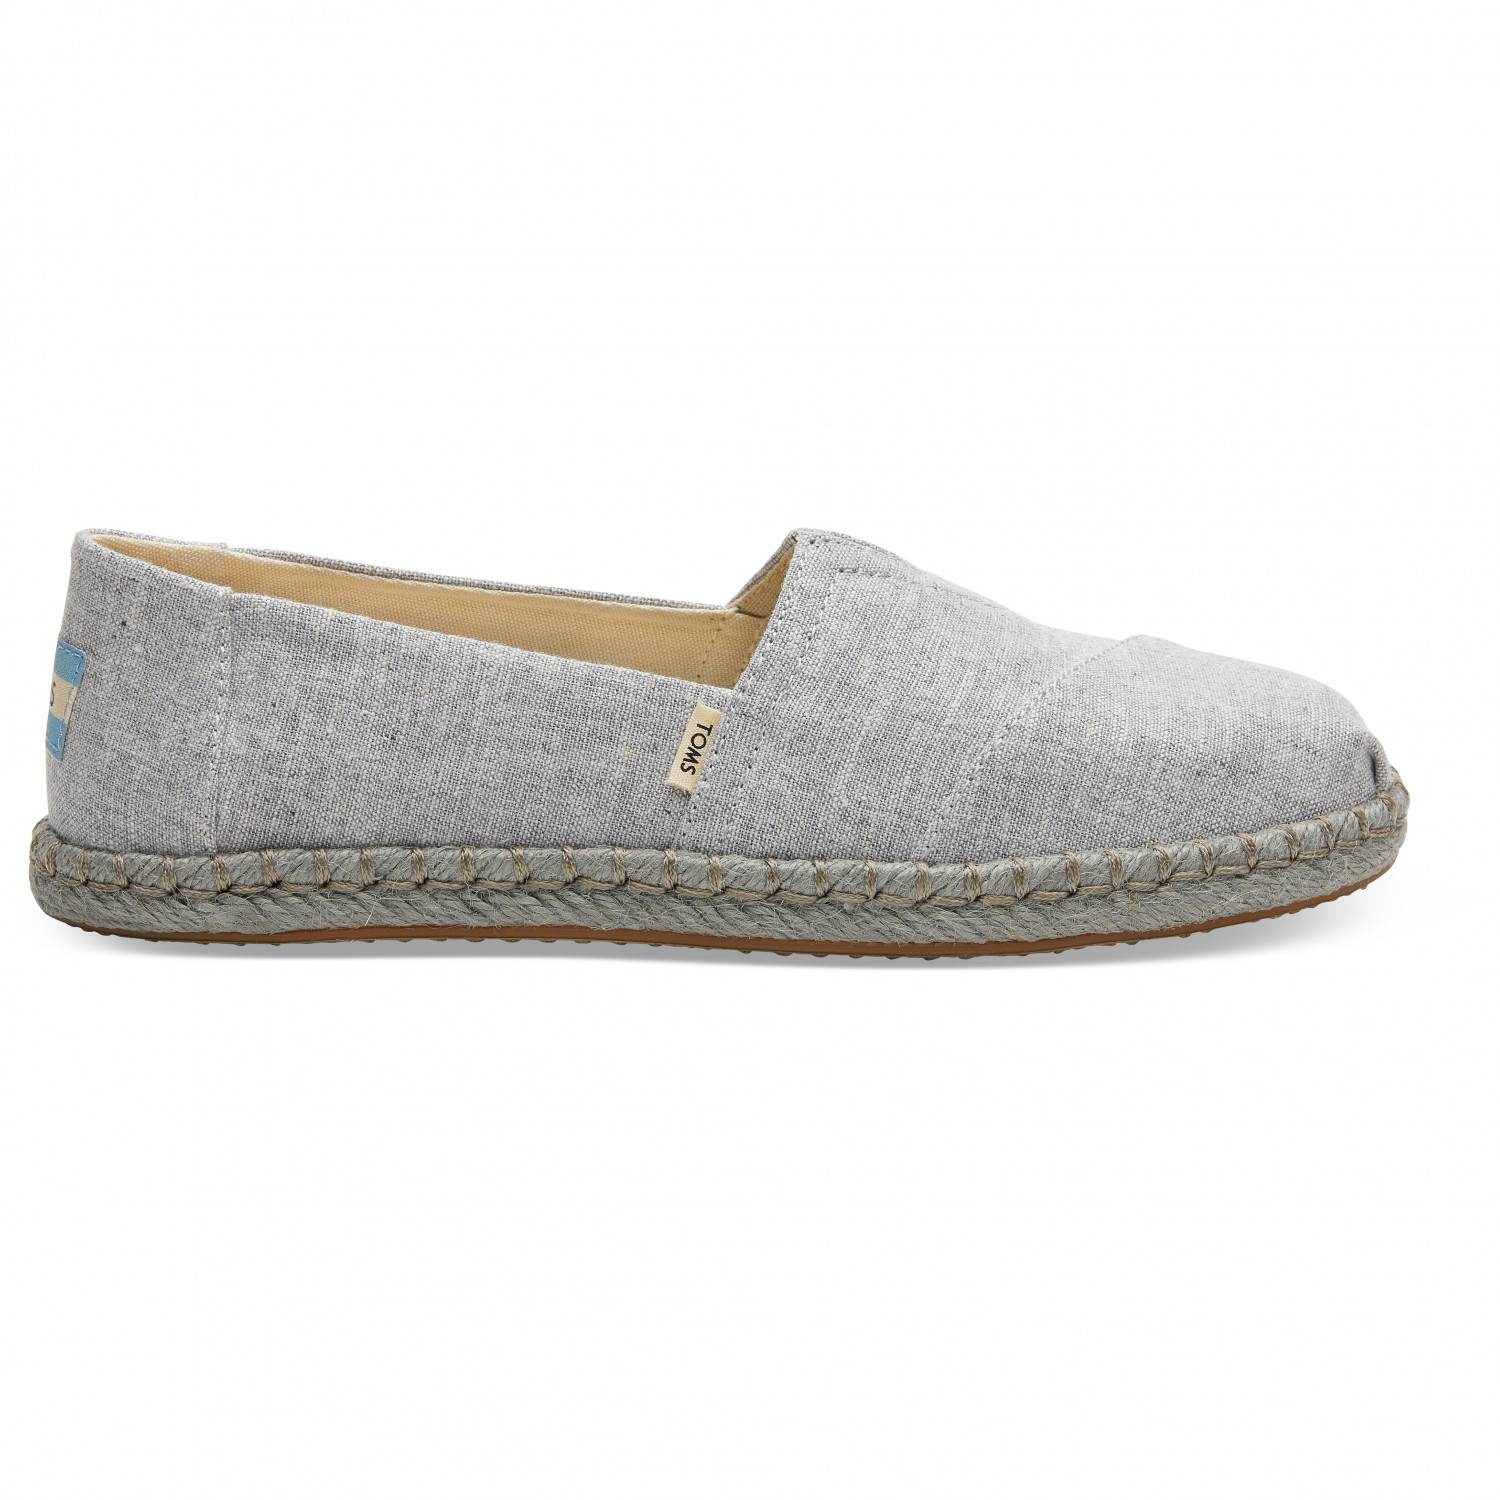 709cd030d TOMS Alpargata Rope Chambray Espadrille - Sneakers Women's | Buy ...